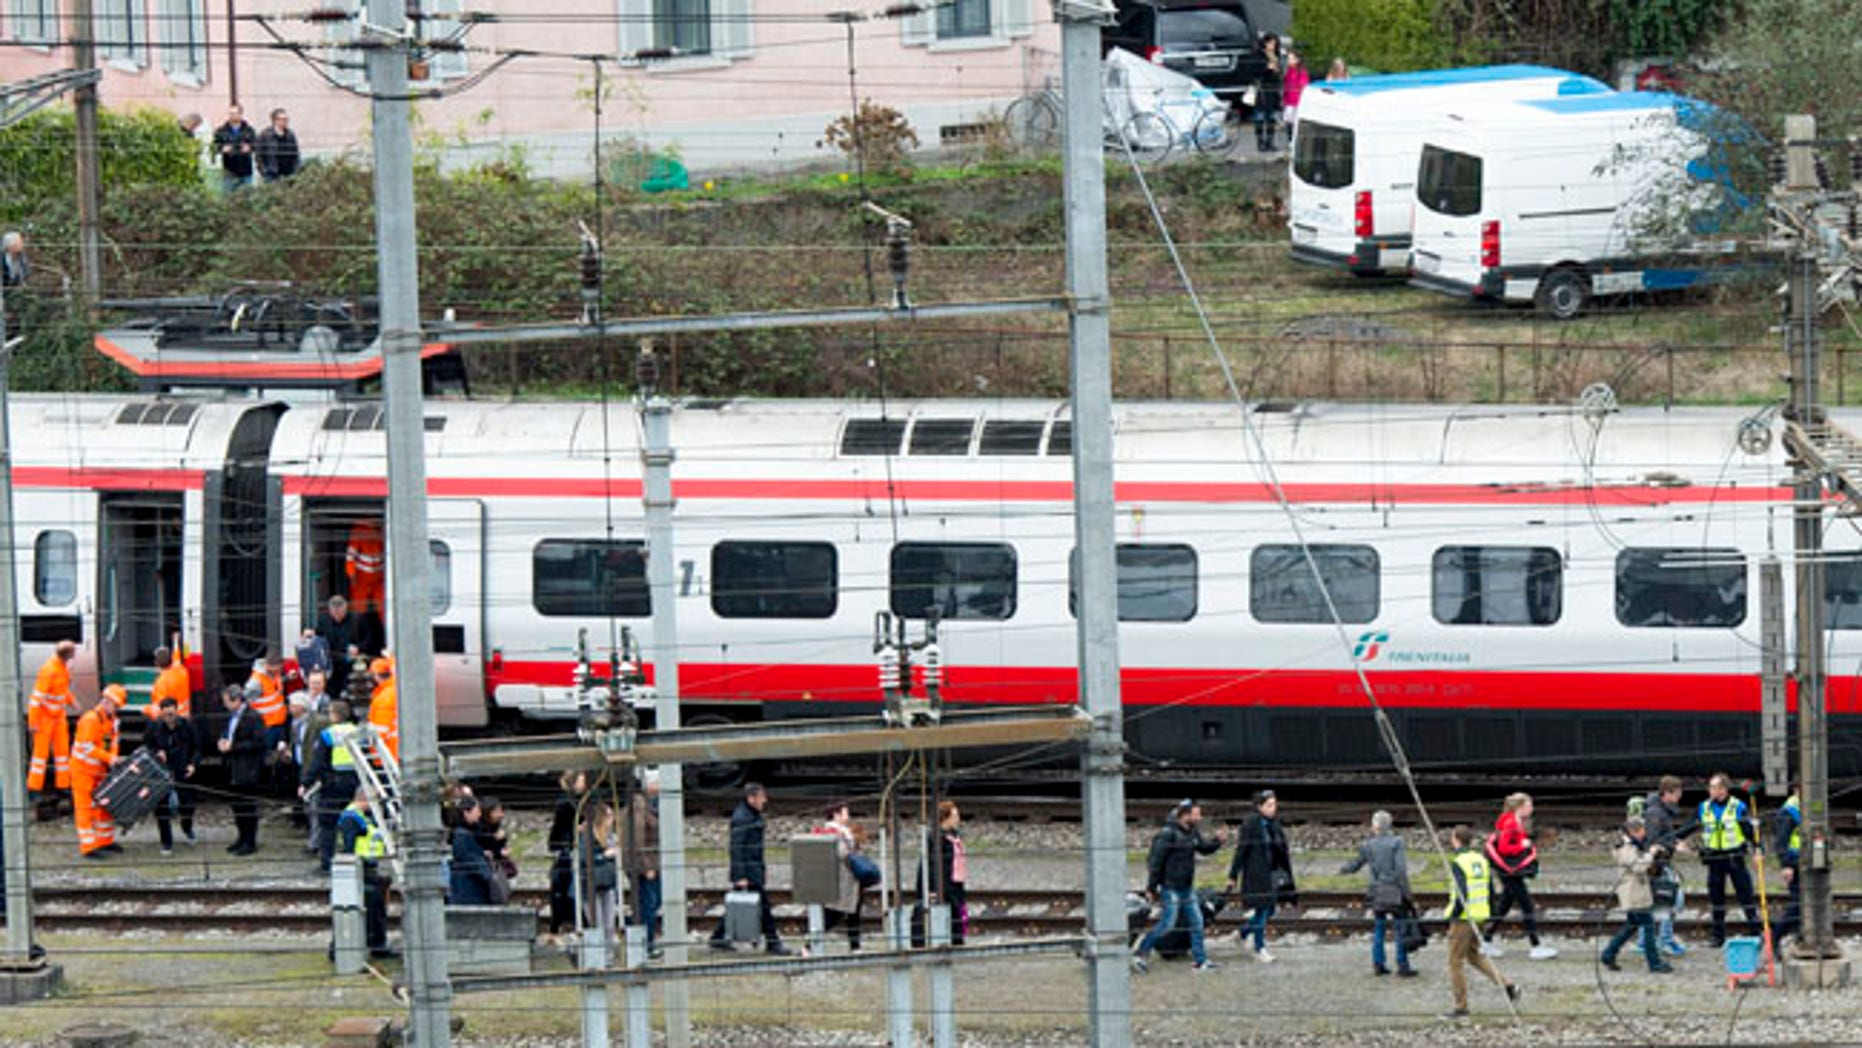 Rescuers help passengers next to a derailed train in the station of Lucerne, Switzerland, Wednesday, March 22, 2017. Swiss police say they are trying to reach people trapped inside the train in the  city of Lucerne, with details of any injuries still unclear. Rail company SBB says the Milan to Basel train derailed Wednesday as it was pulling out of Lucerne's main train station.   (Urs Flueeler/Keystone via AP)